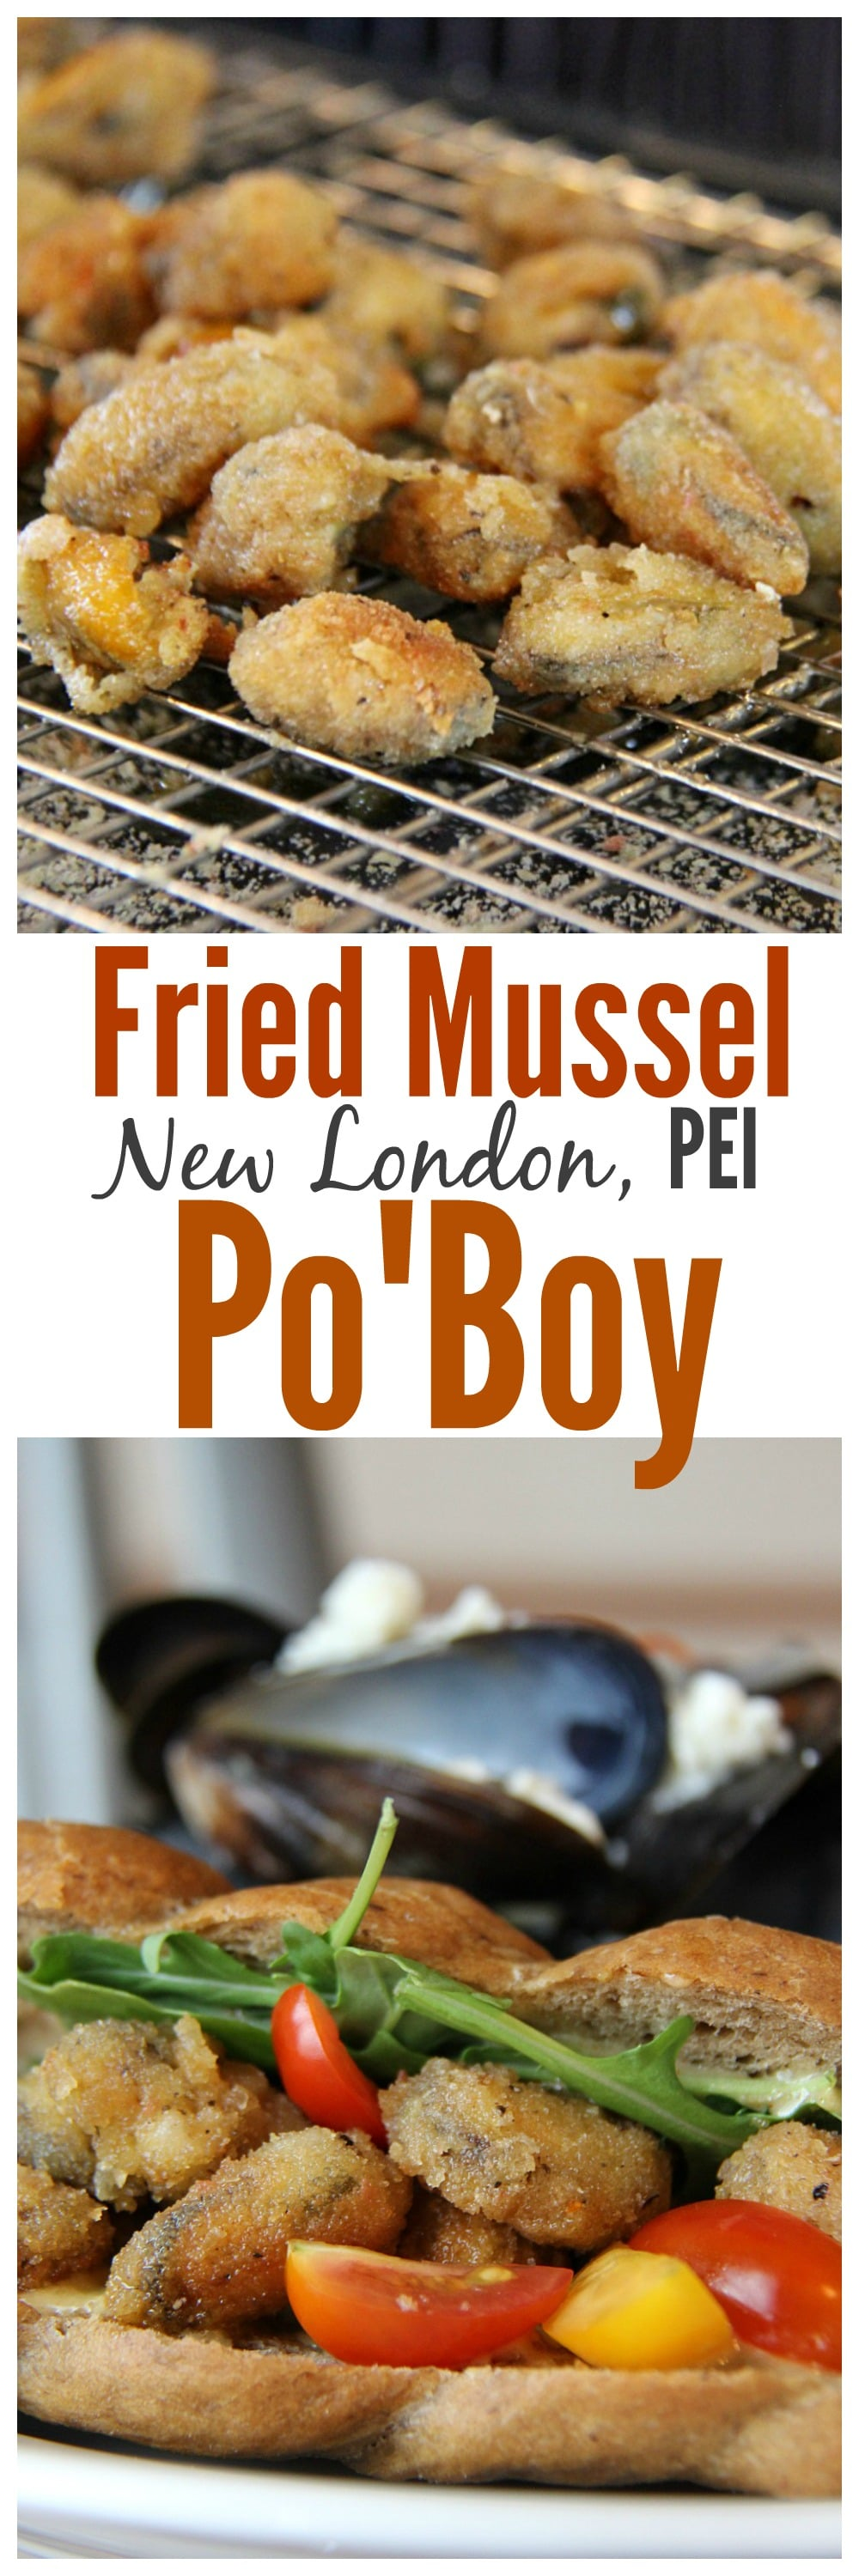 Fried Mussel Po Boy Recipe - Cooking Classes PEI